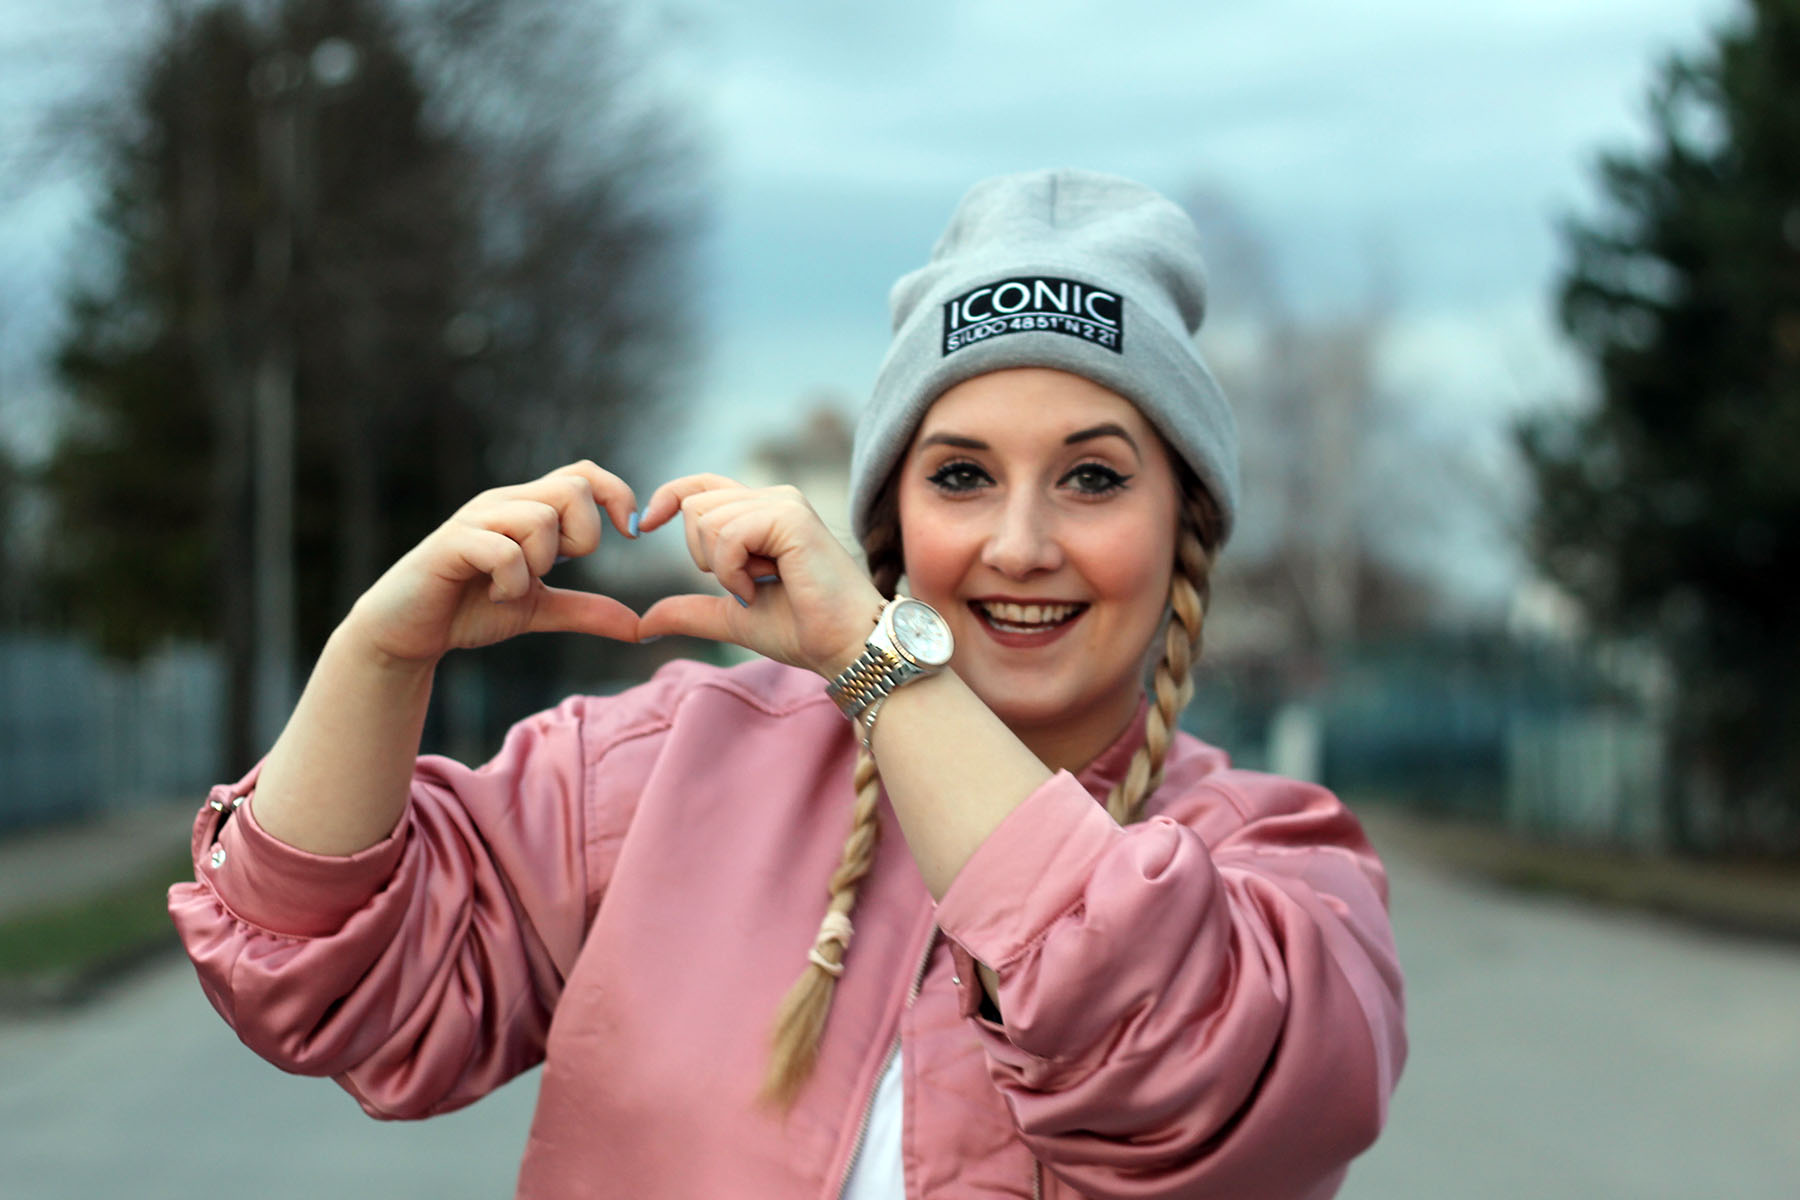 valentinstag-verlsoung-giveaway-modeblog-fashionblog-outfit-look-bomberjacke